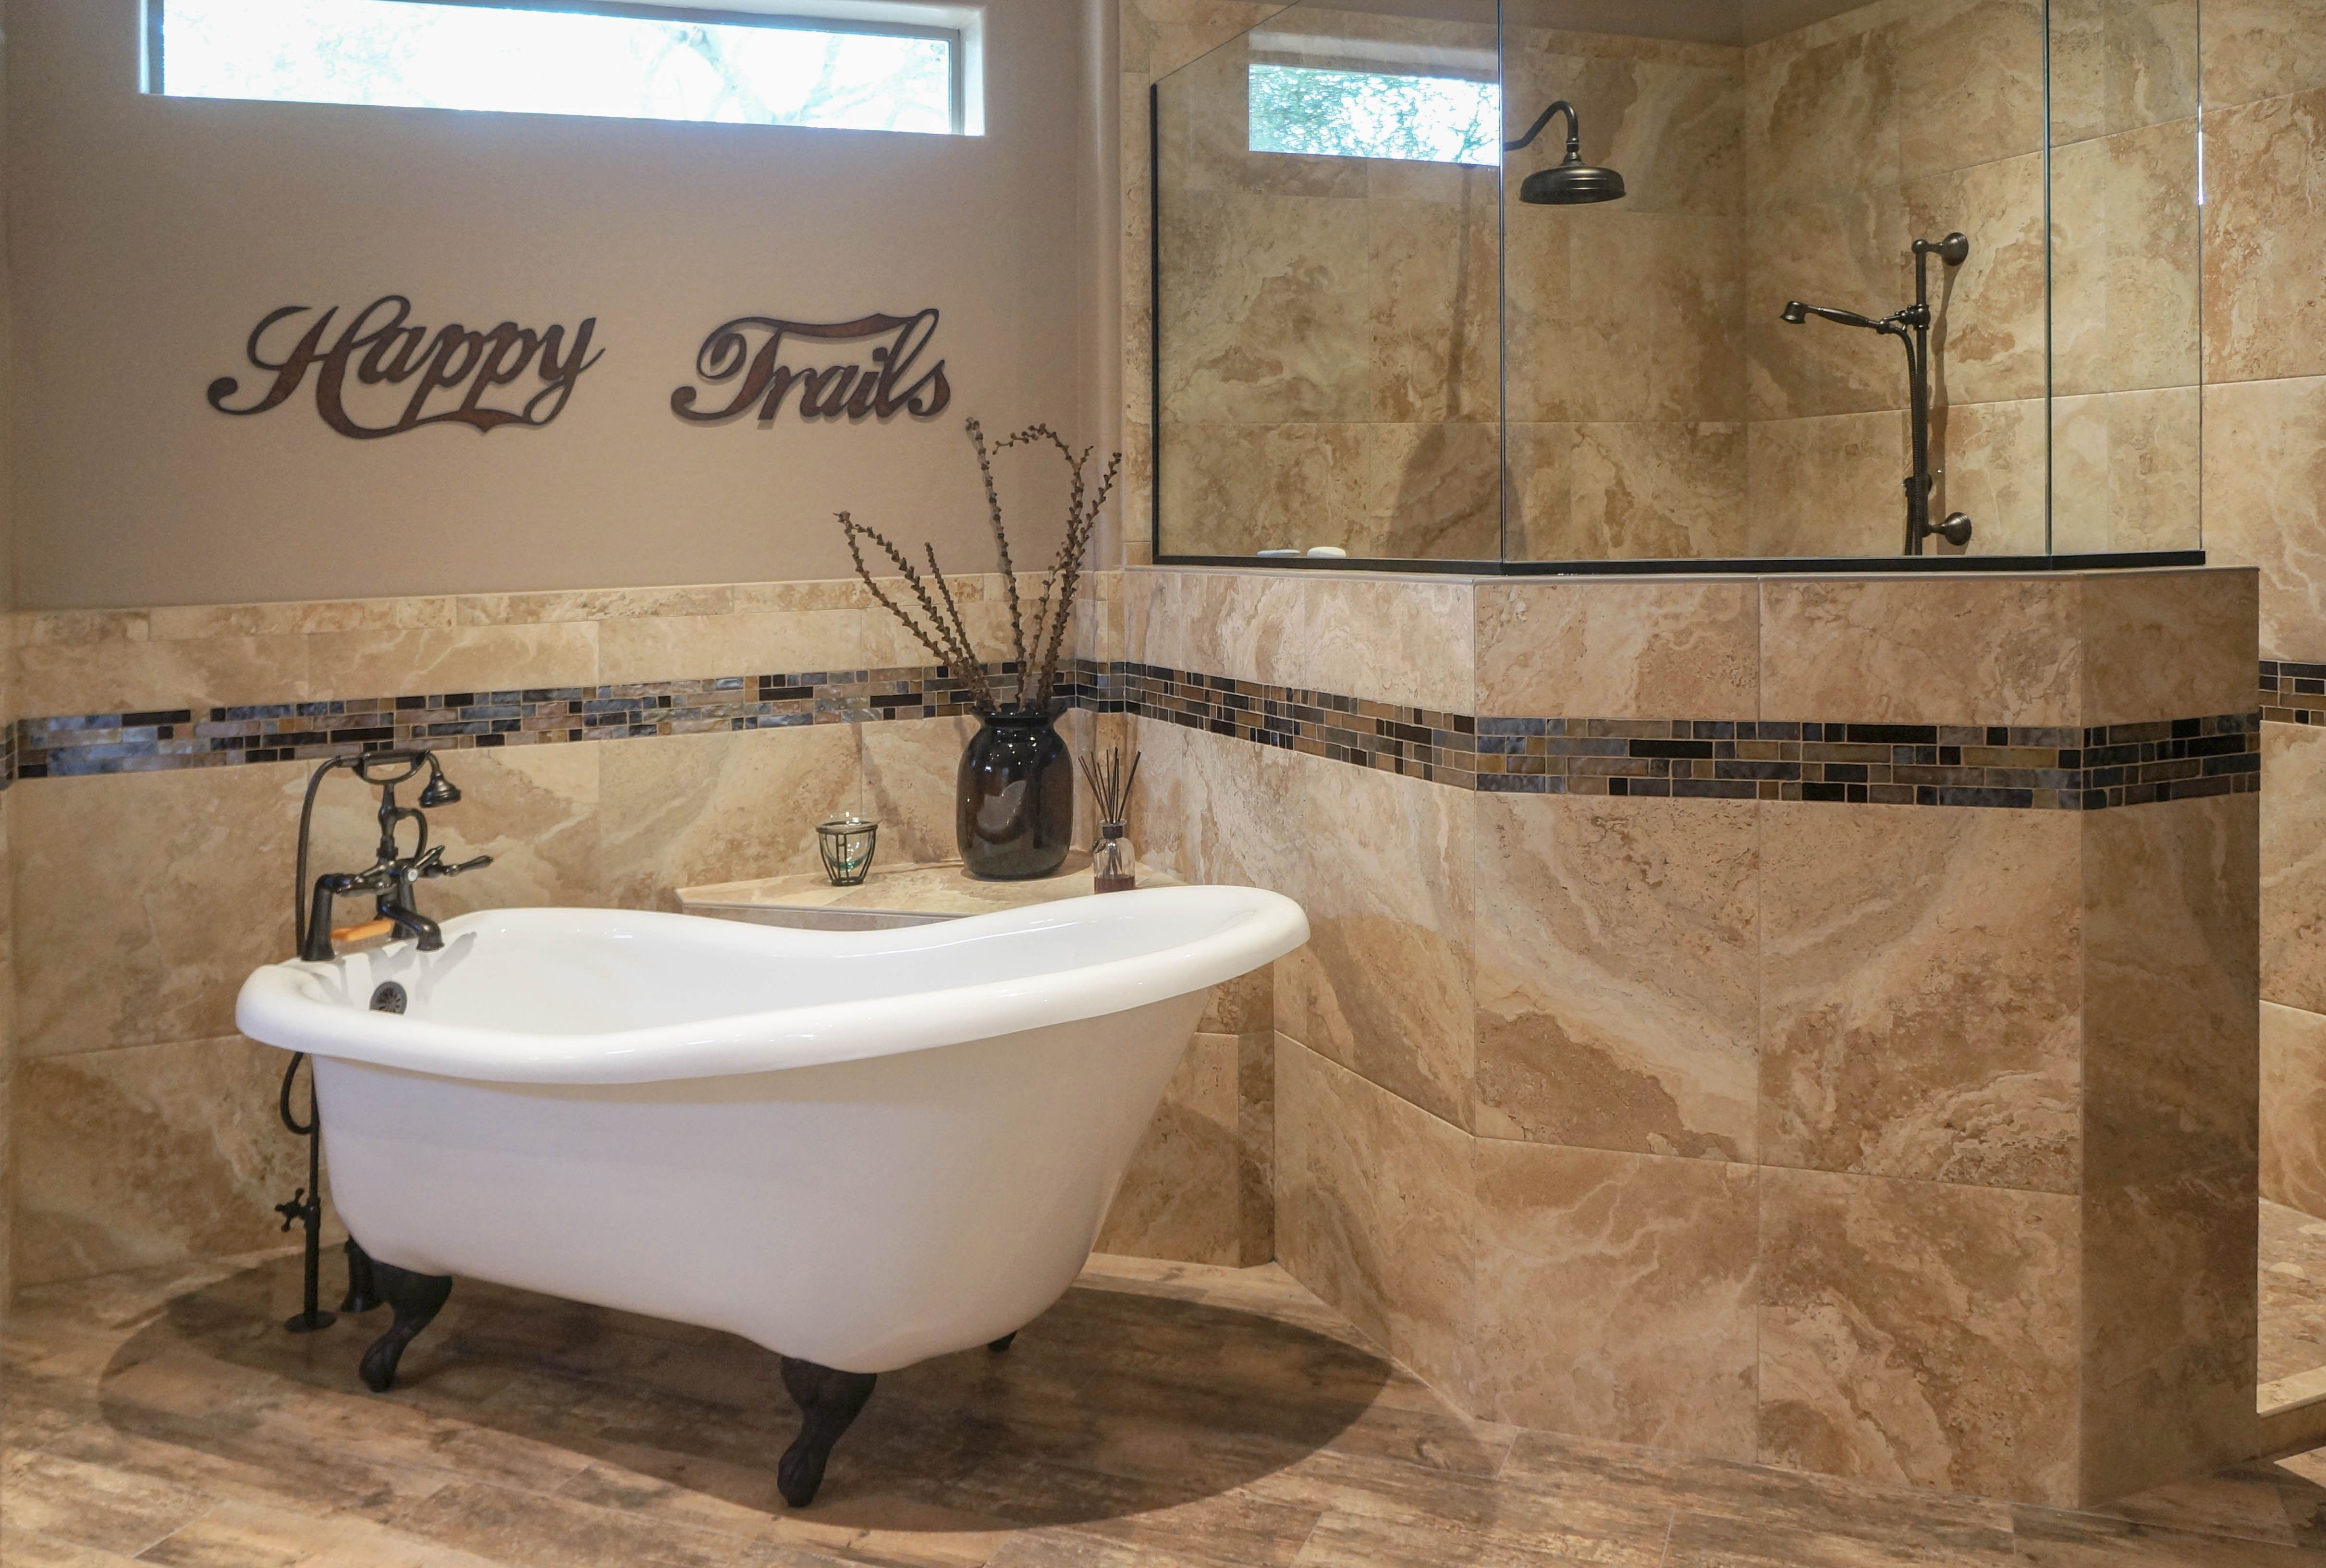 50 Images How Much Does Bathroom Remodel Cost Small Shower Remodel Bathroom Remodel Cost Shower Remodel